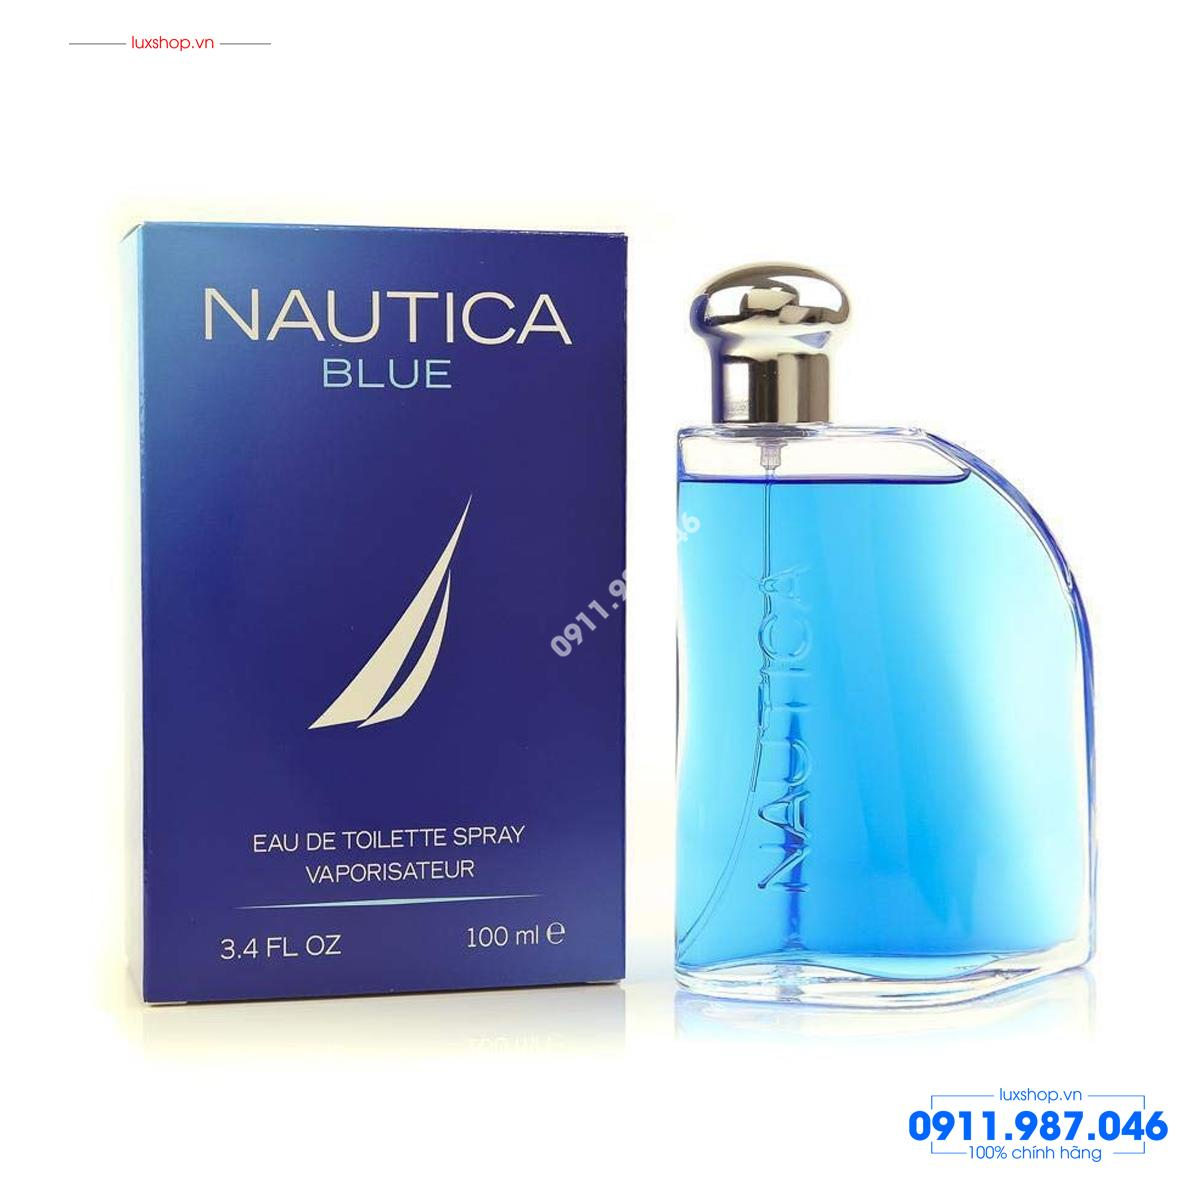 nuoc-hoa-nam-nautica-blue-edt-100ml-chinh-hang-my-l101959